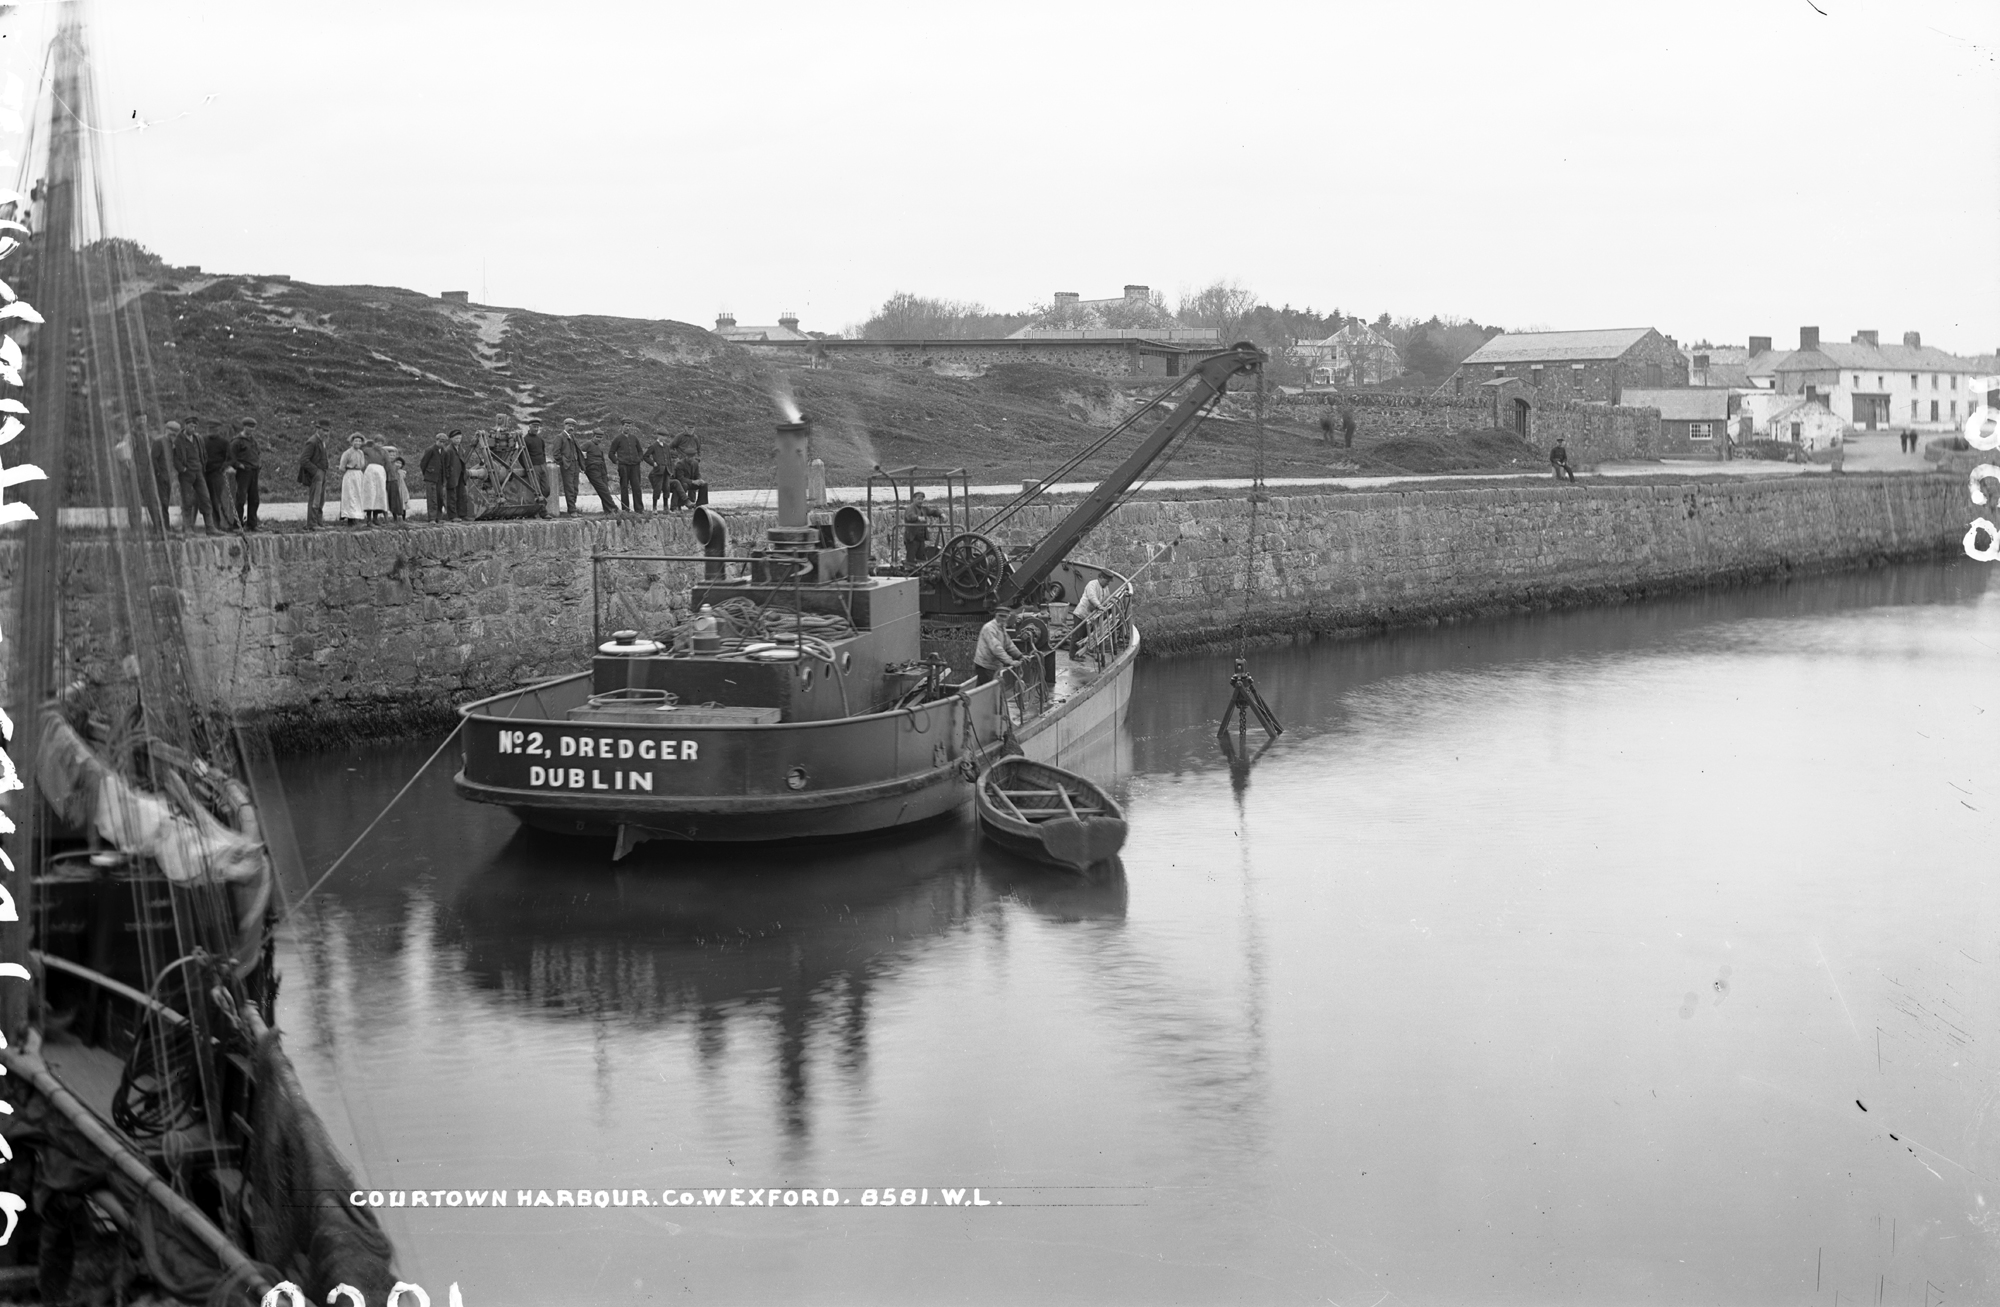 Old photo of Courtown Harbour, Co. Wexford, Ireland